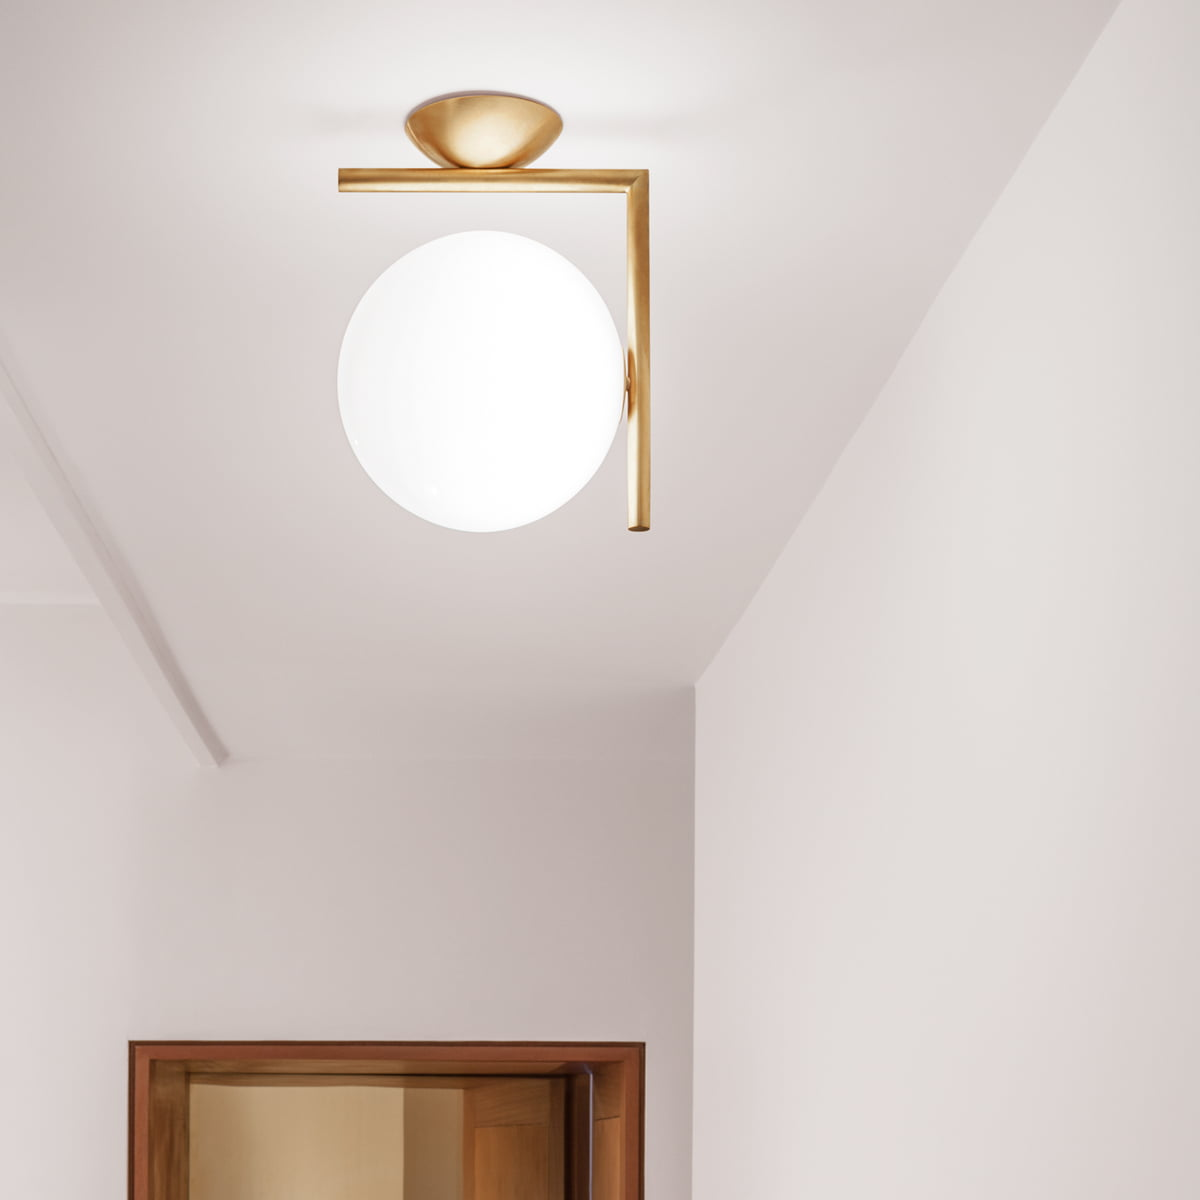 Flos Wall Light: Flos - IC Wall and Ceiling Lamp,Lighting